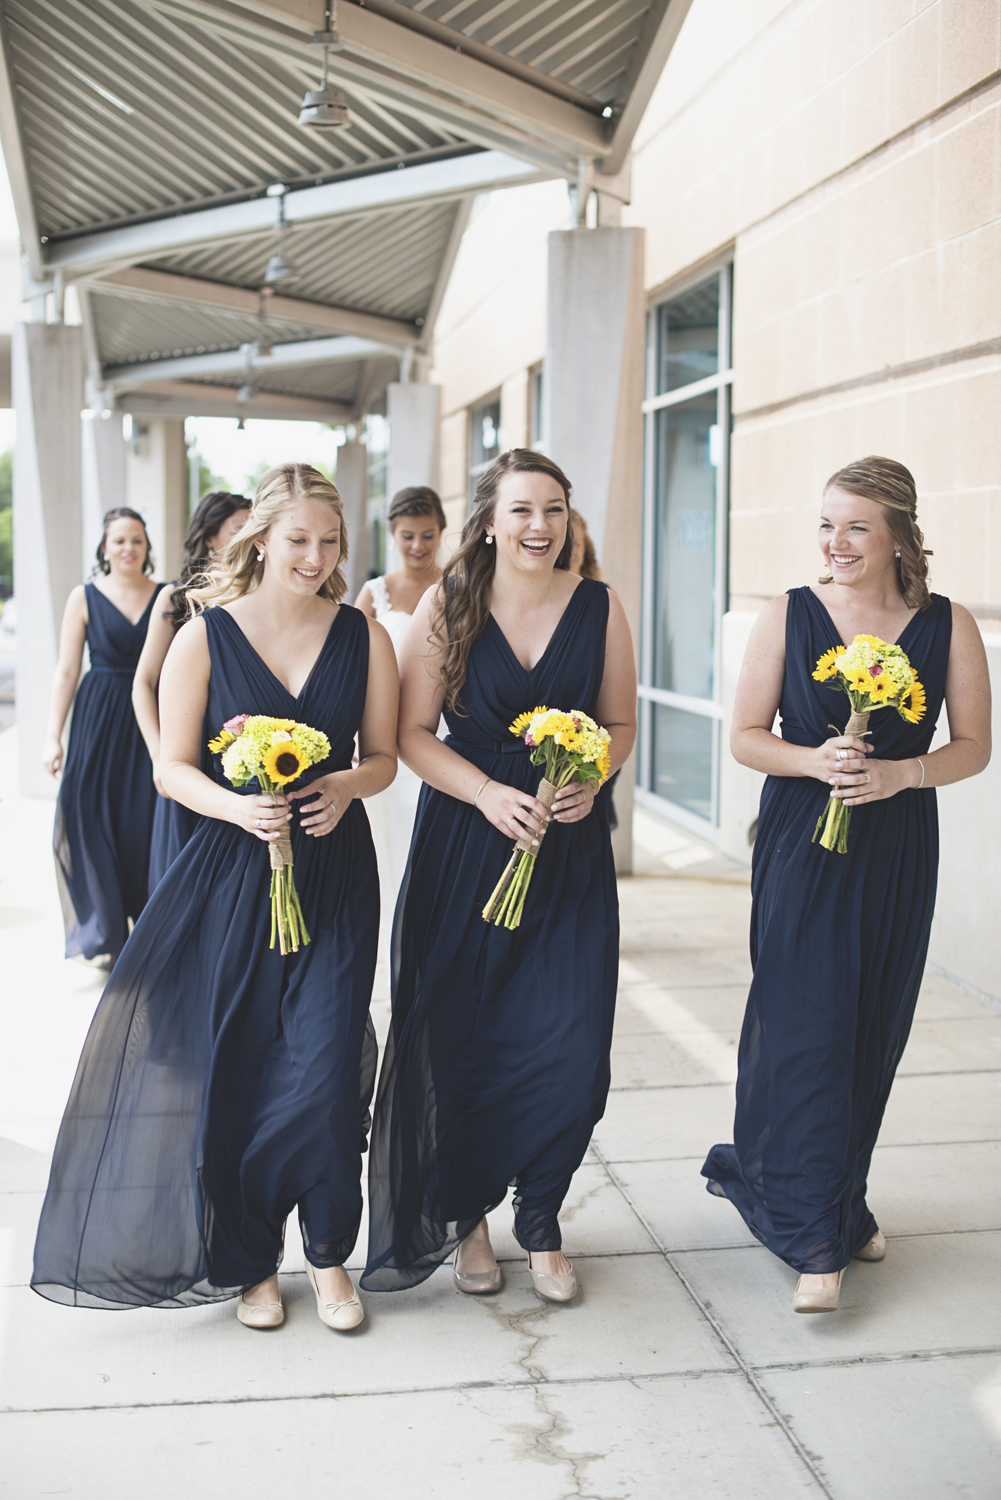 The Wedding Timeline: Bridal Party Portraits